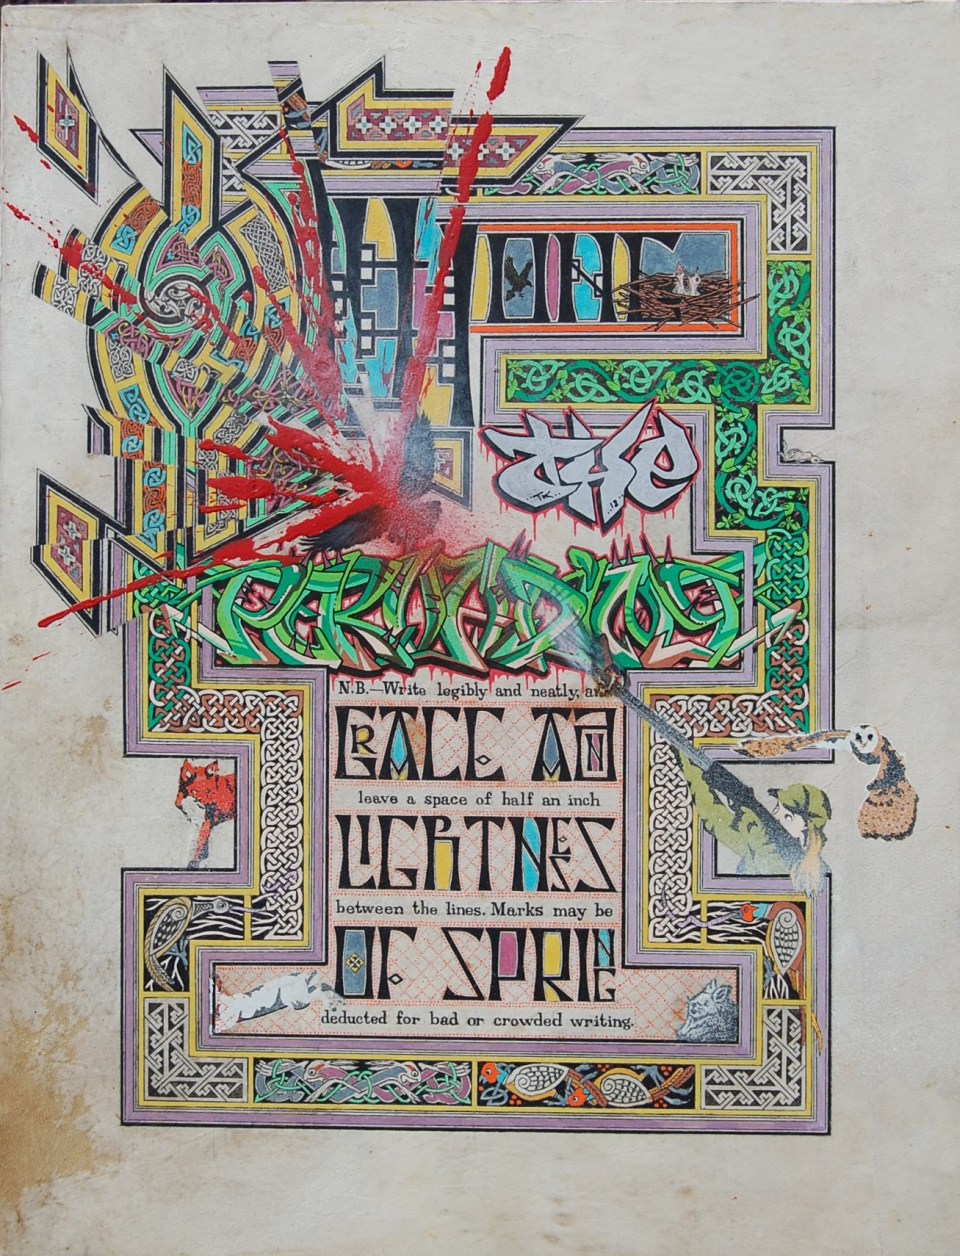 Image1. 'among the pervading grace'Illumination on parchment with graffiti.